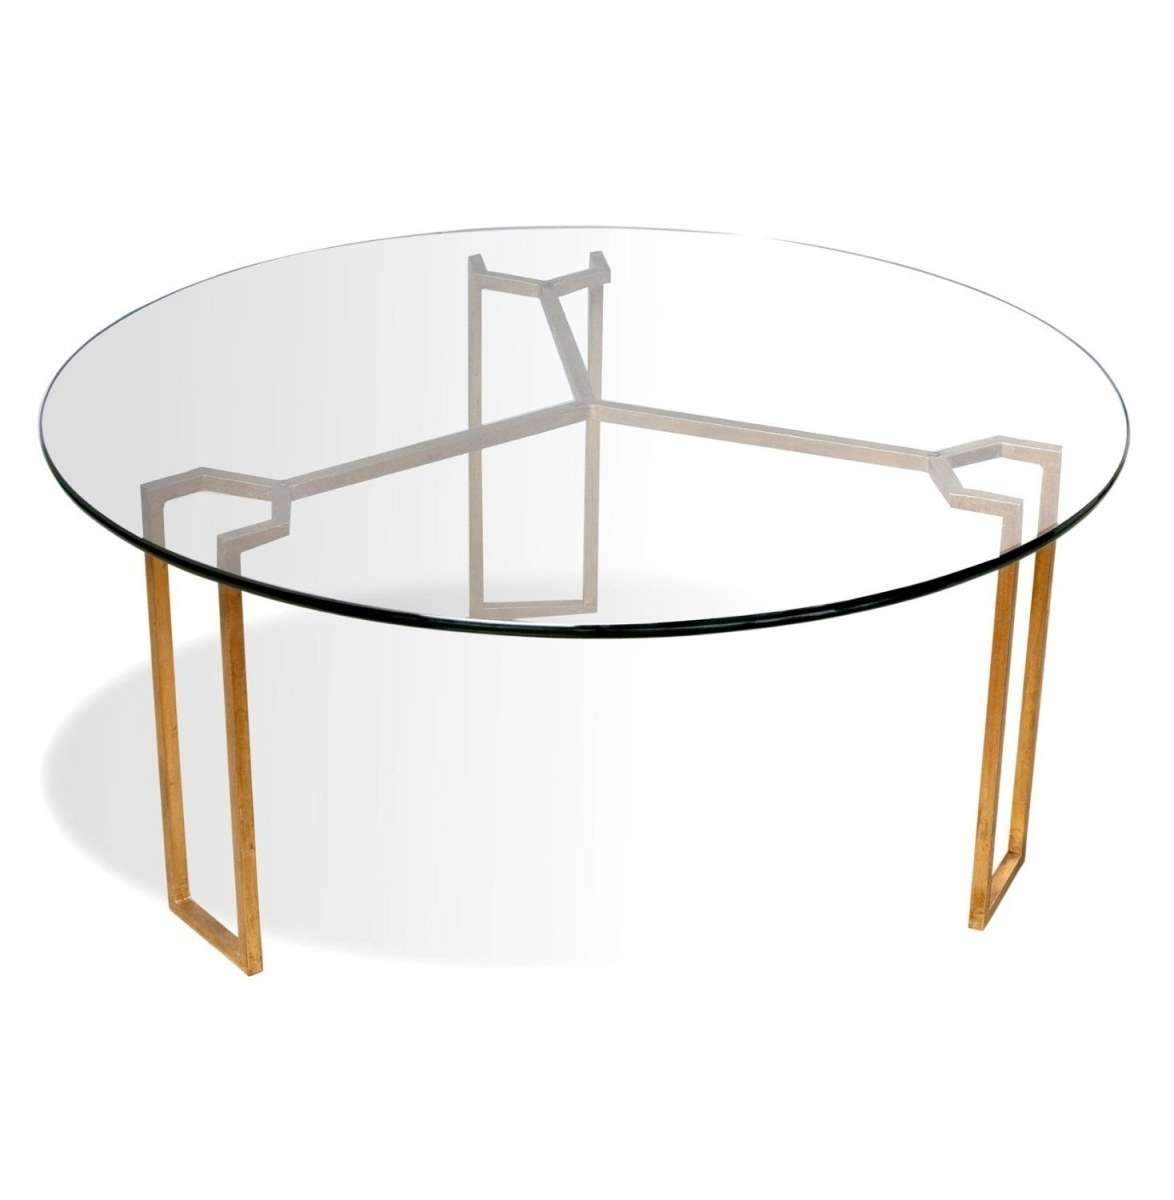 Glass Round Coffee Tables Small Round Glass Coffee Table Modern Within Current Glass Circle Coffee Tables (View 11 of 20)